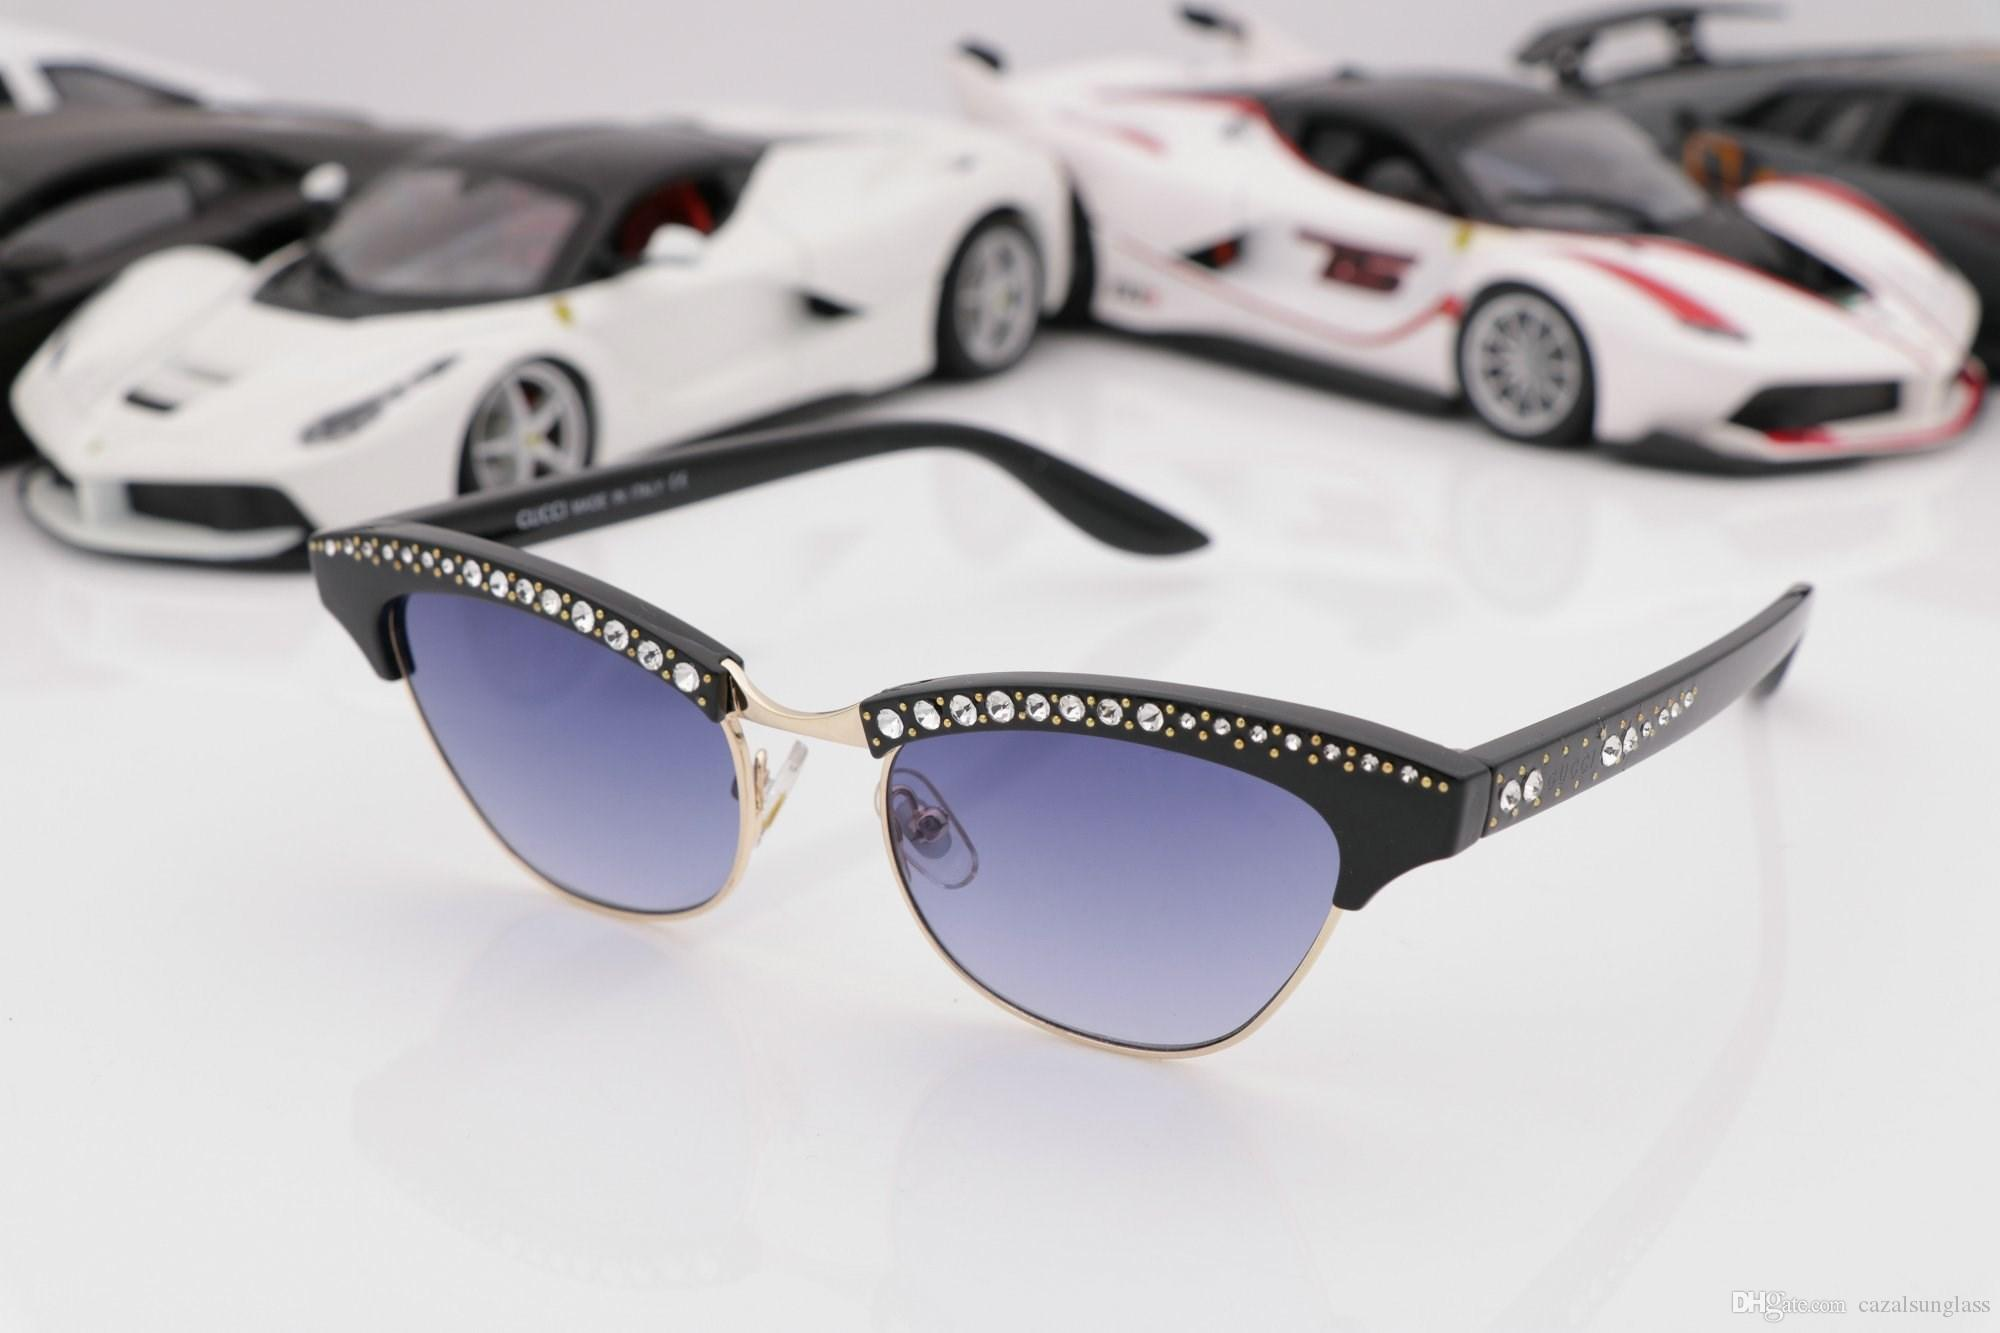 a7c4c9c37a3 0153S Sunglasses Black Acetate Diamond With Popular Design Frame Popular UV  Protection Sunglasses Top Quality Fashion Summer Style With Box Round  Sunglasses ...